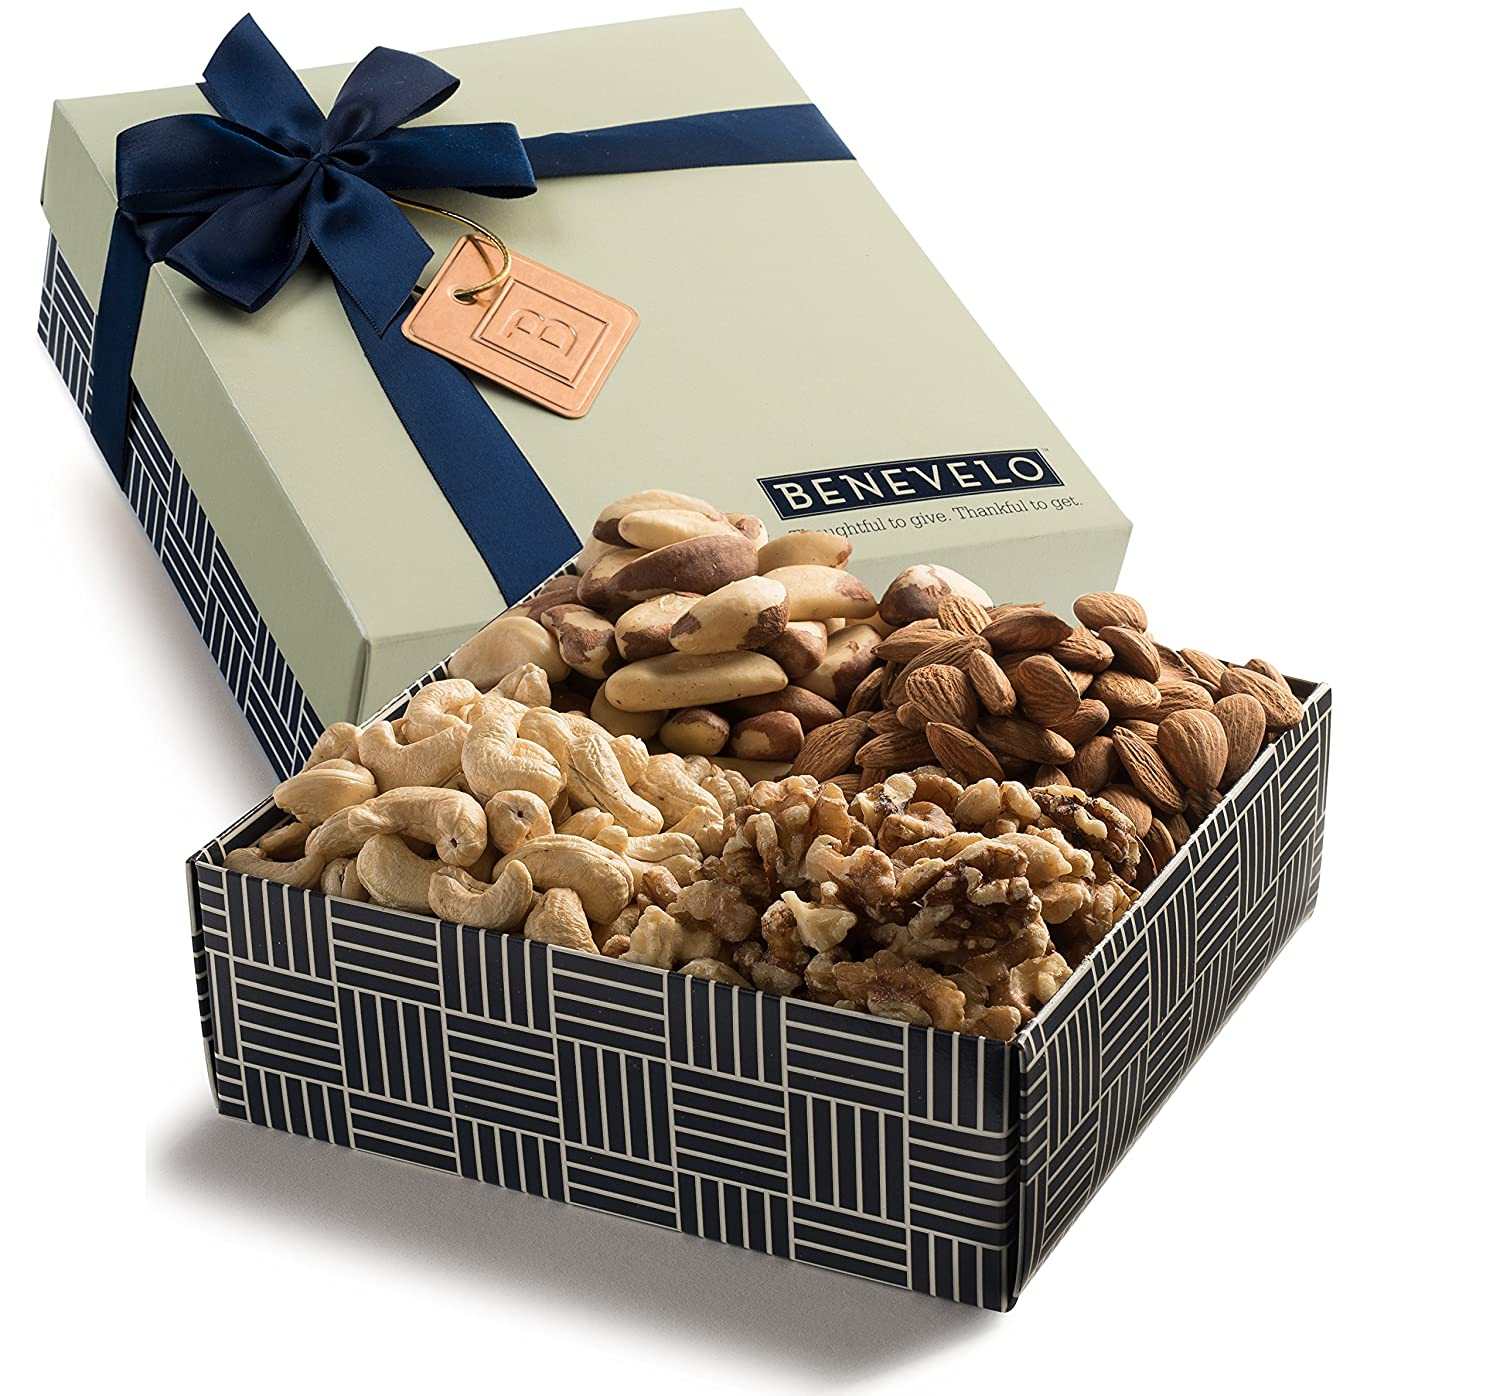 Amazon.com : Benevelo Gifts Gourmet Gift Tray of Natural Raw Mixed ...